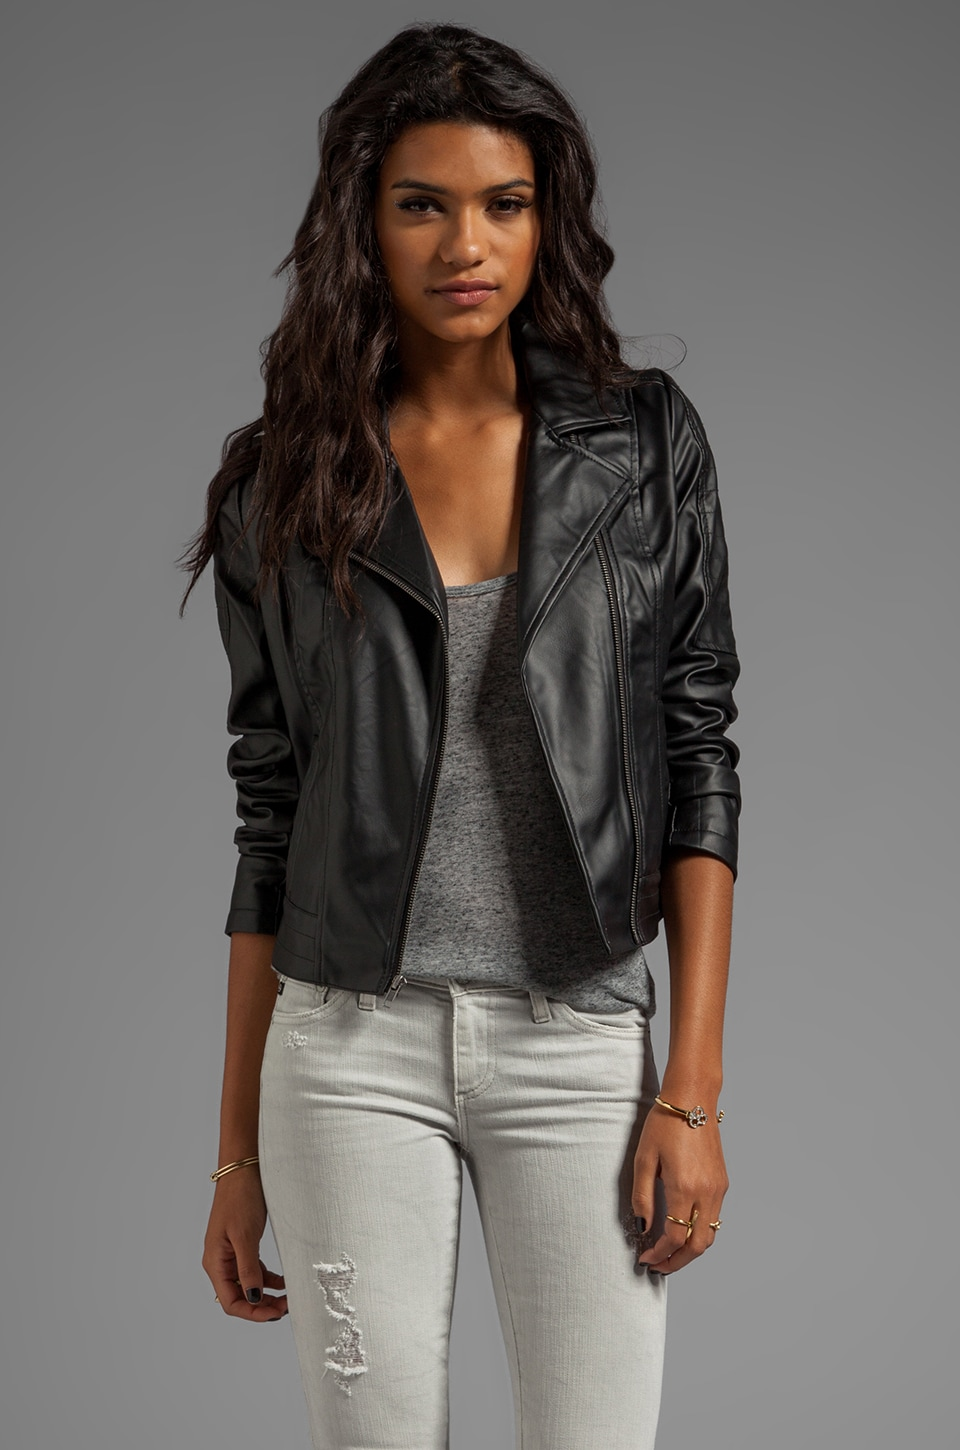 BB Dakota Estela 2 Tone PU Leather Jacket in Black